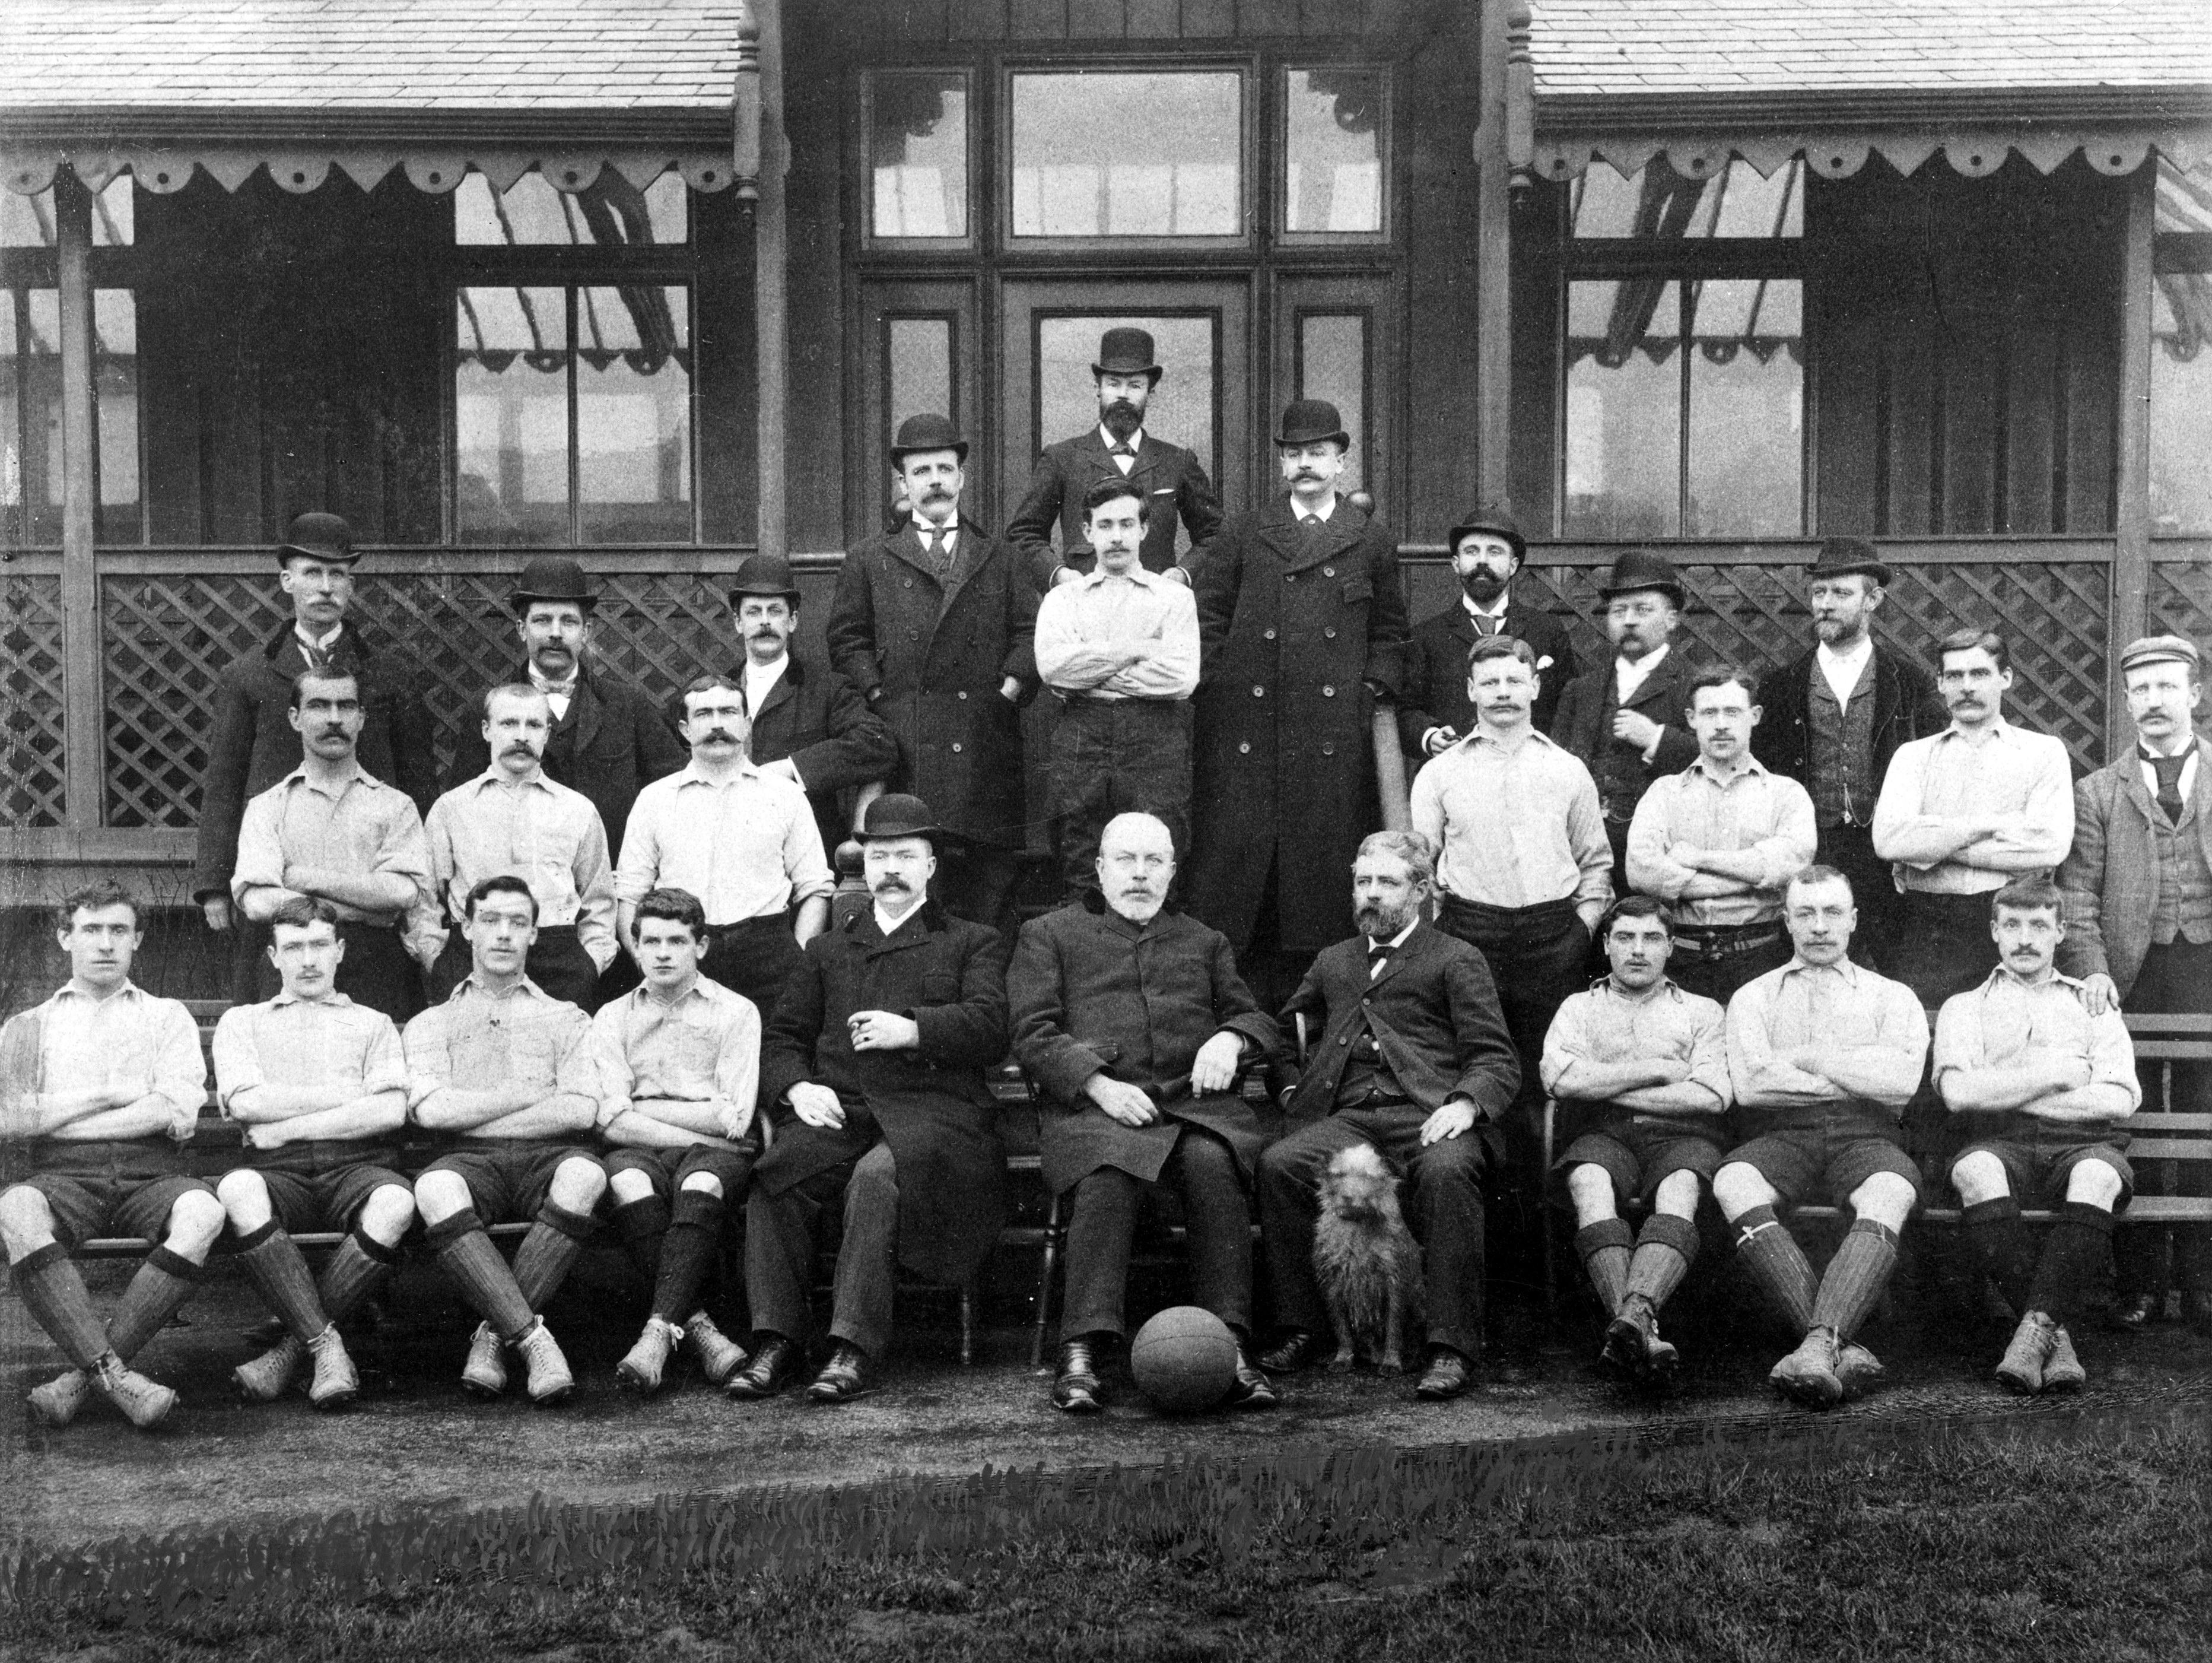 A Liverpool squad photo from 1893